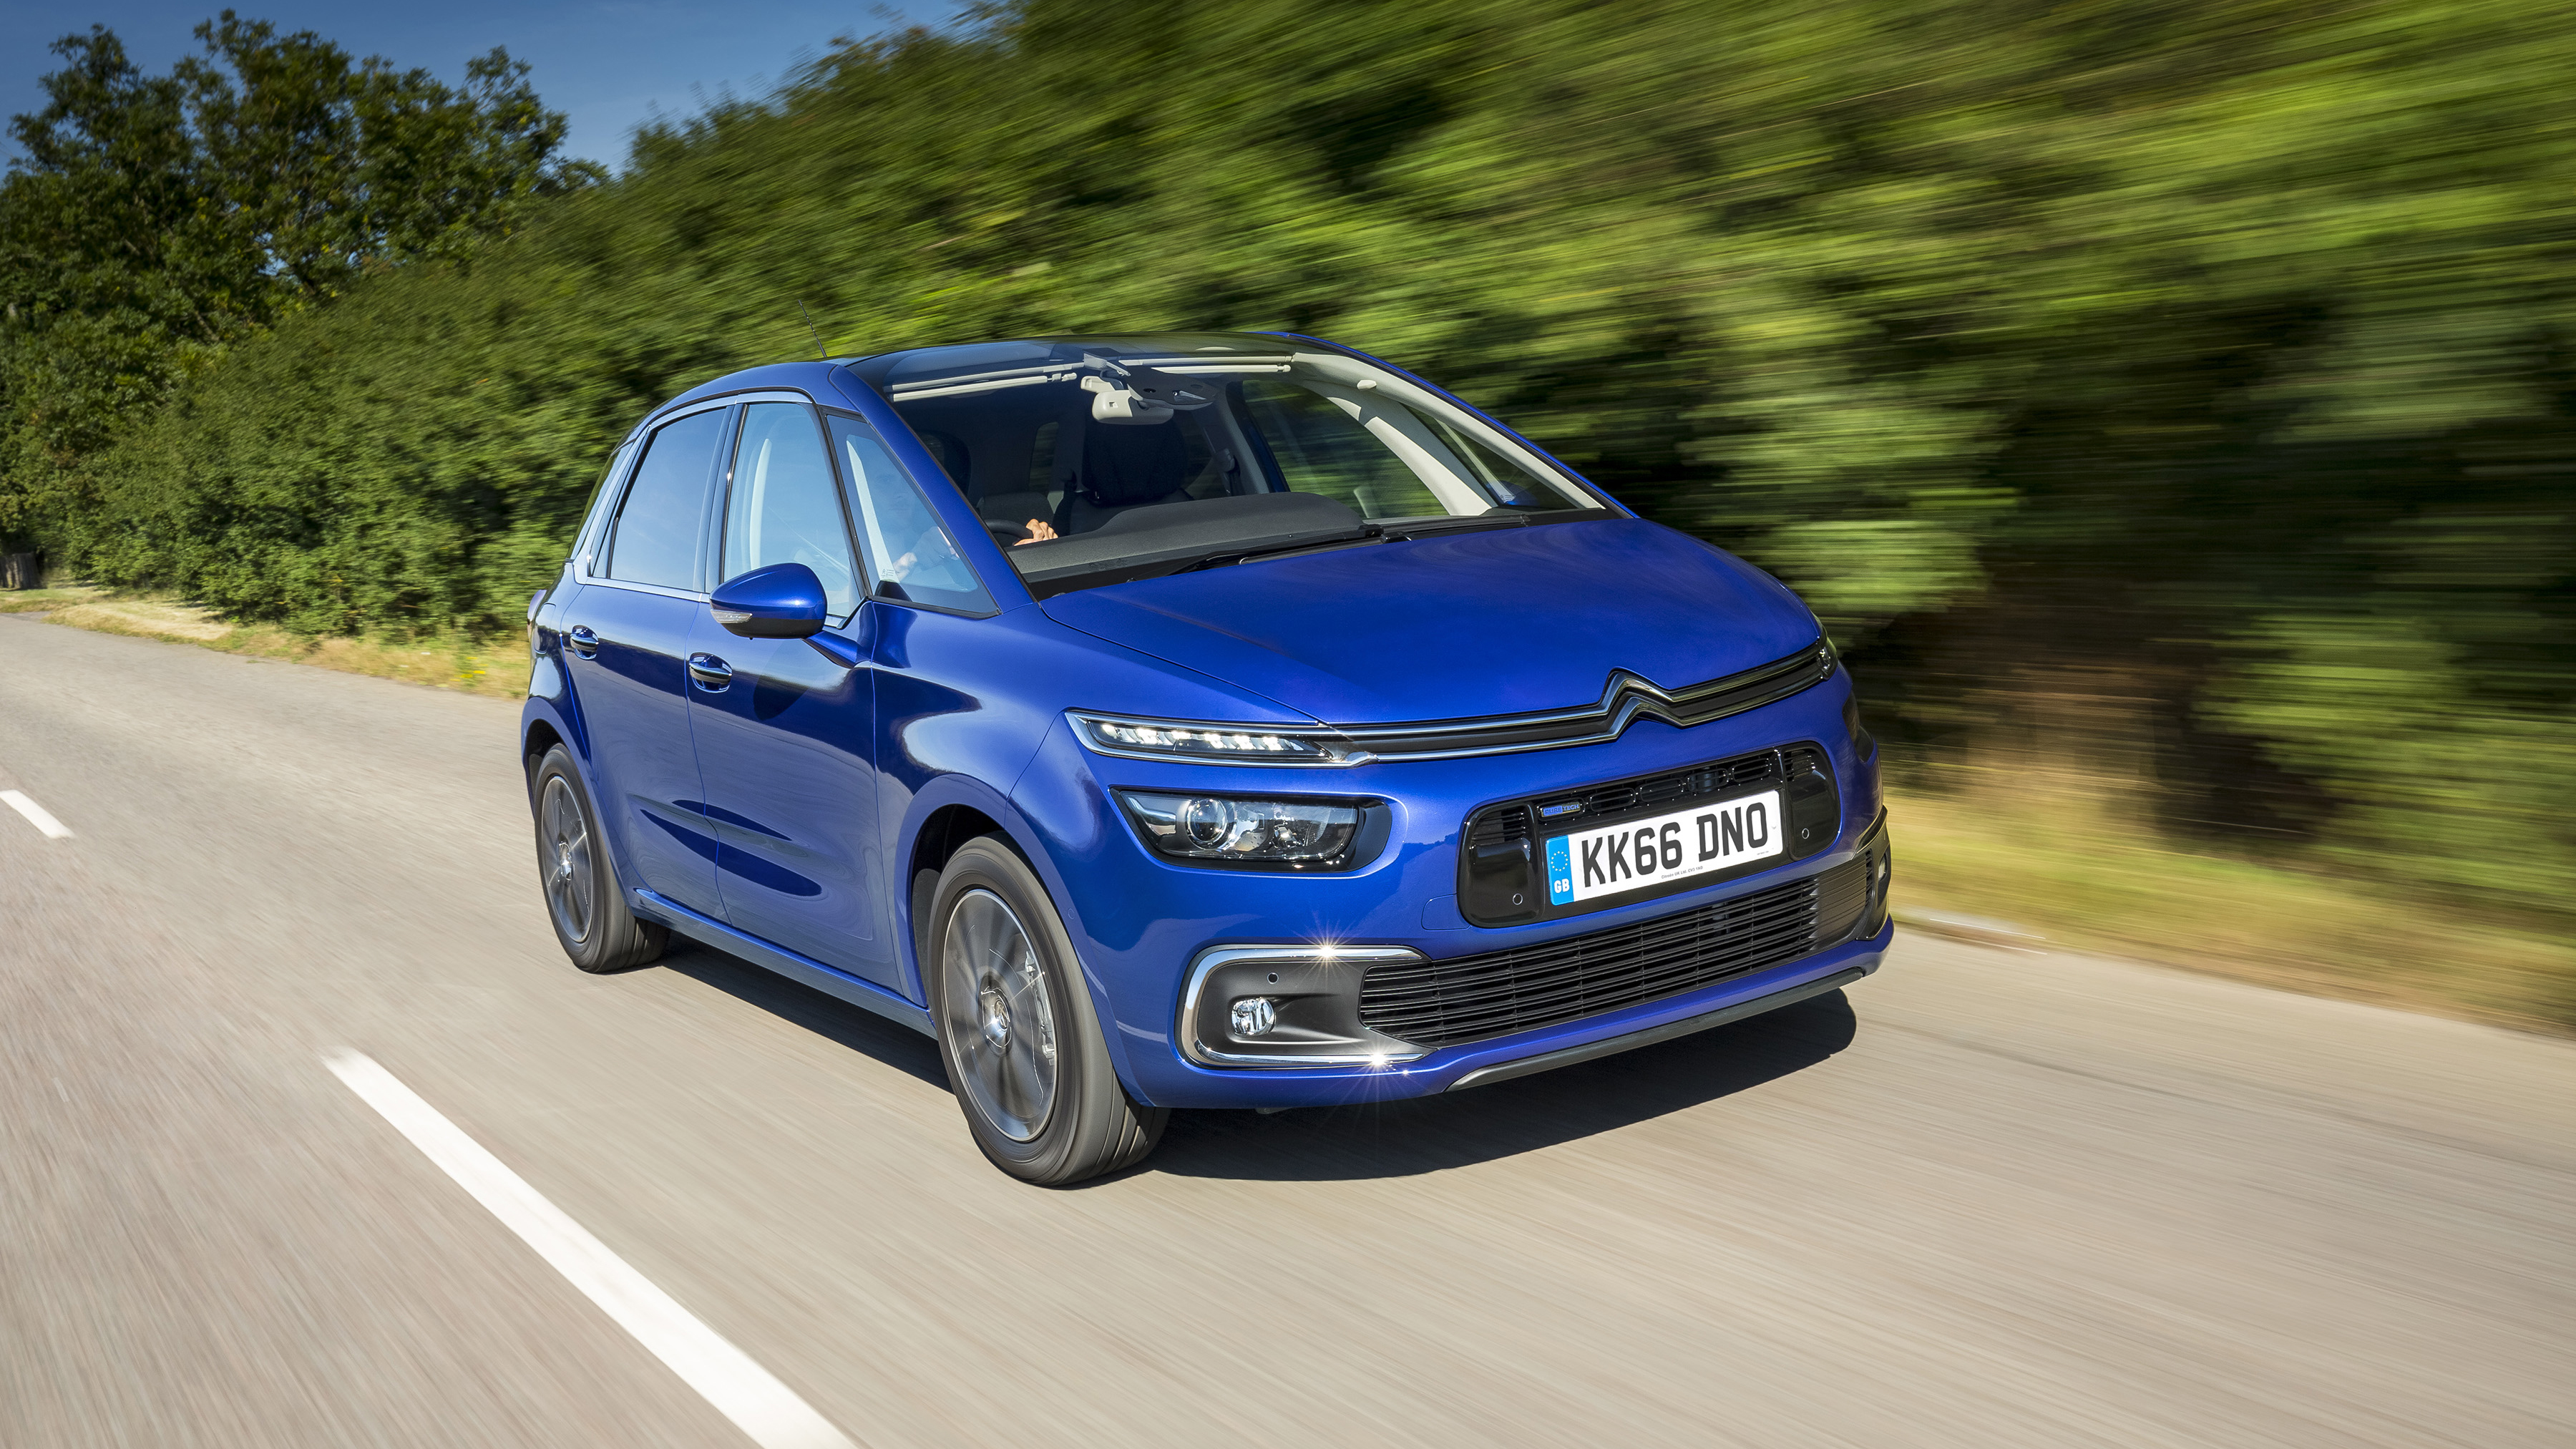 citroen c4 picasso review and buying guide best deals and prices buyacar. Black Bedroom Furniture Sets. Home Design Ideas